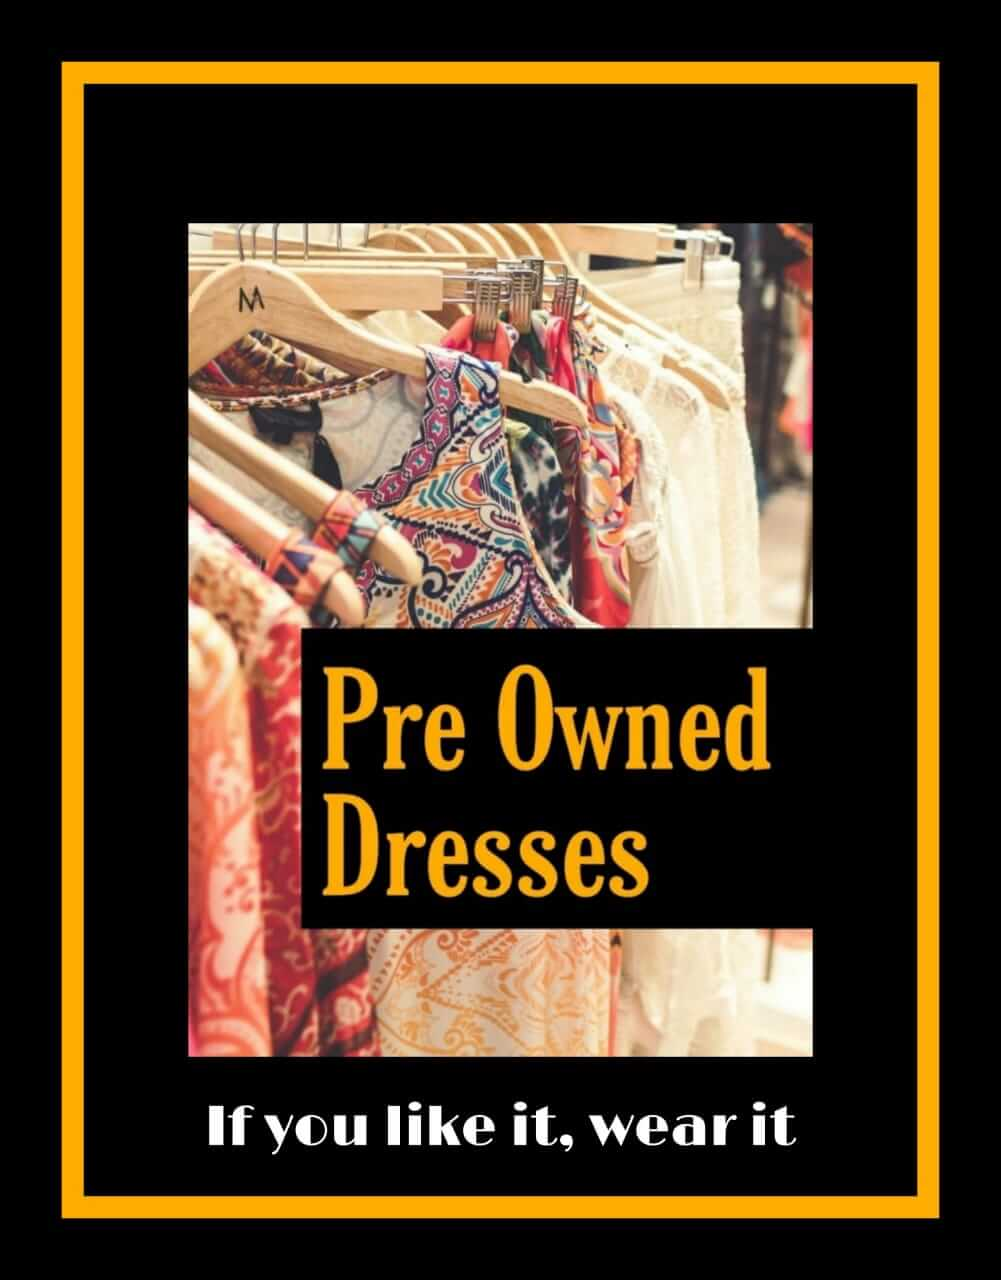 Pre Owned Dresses